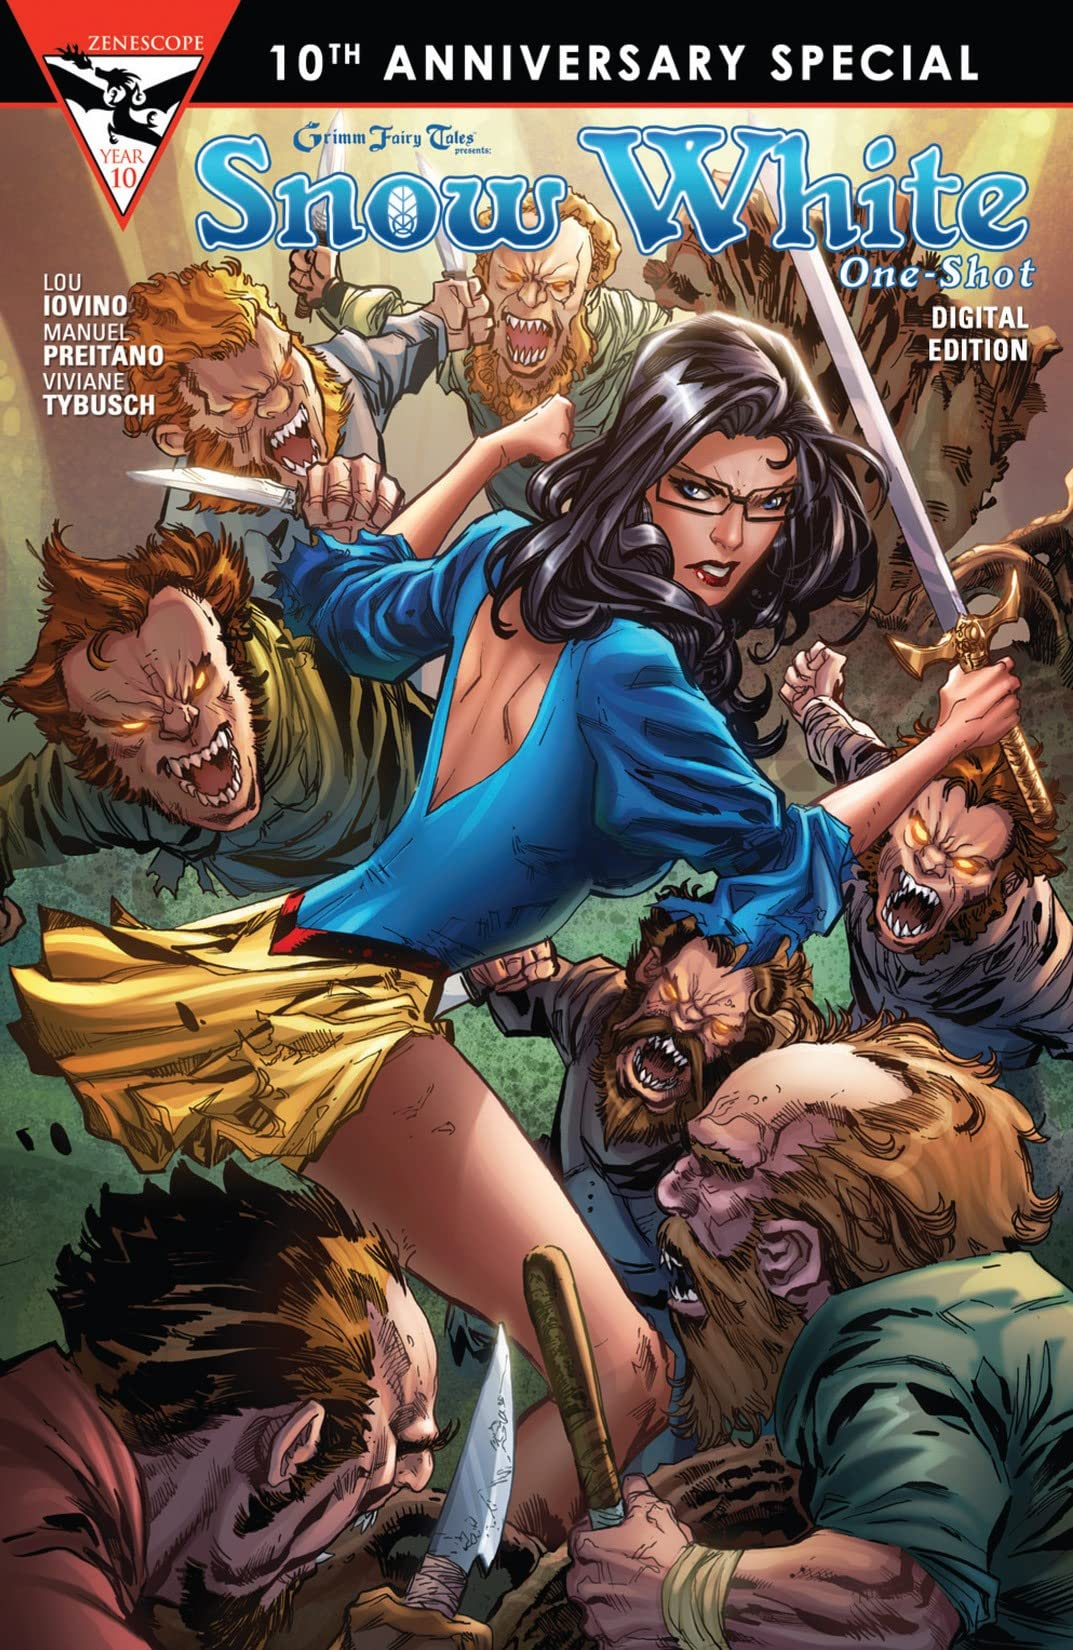 Grimm Fairy Tales 10th Anniversary One Shot - Snow White